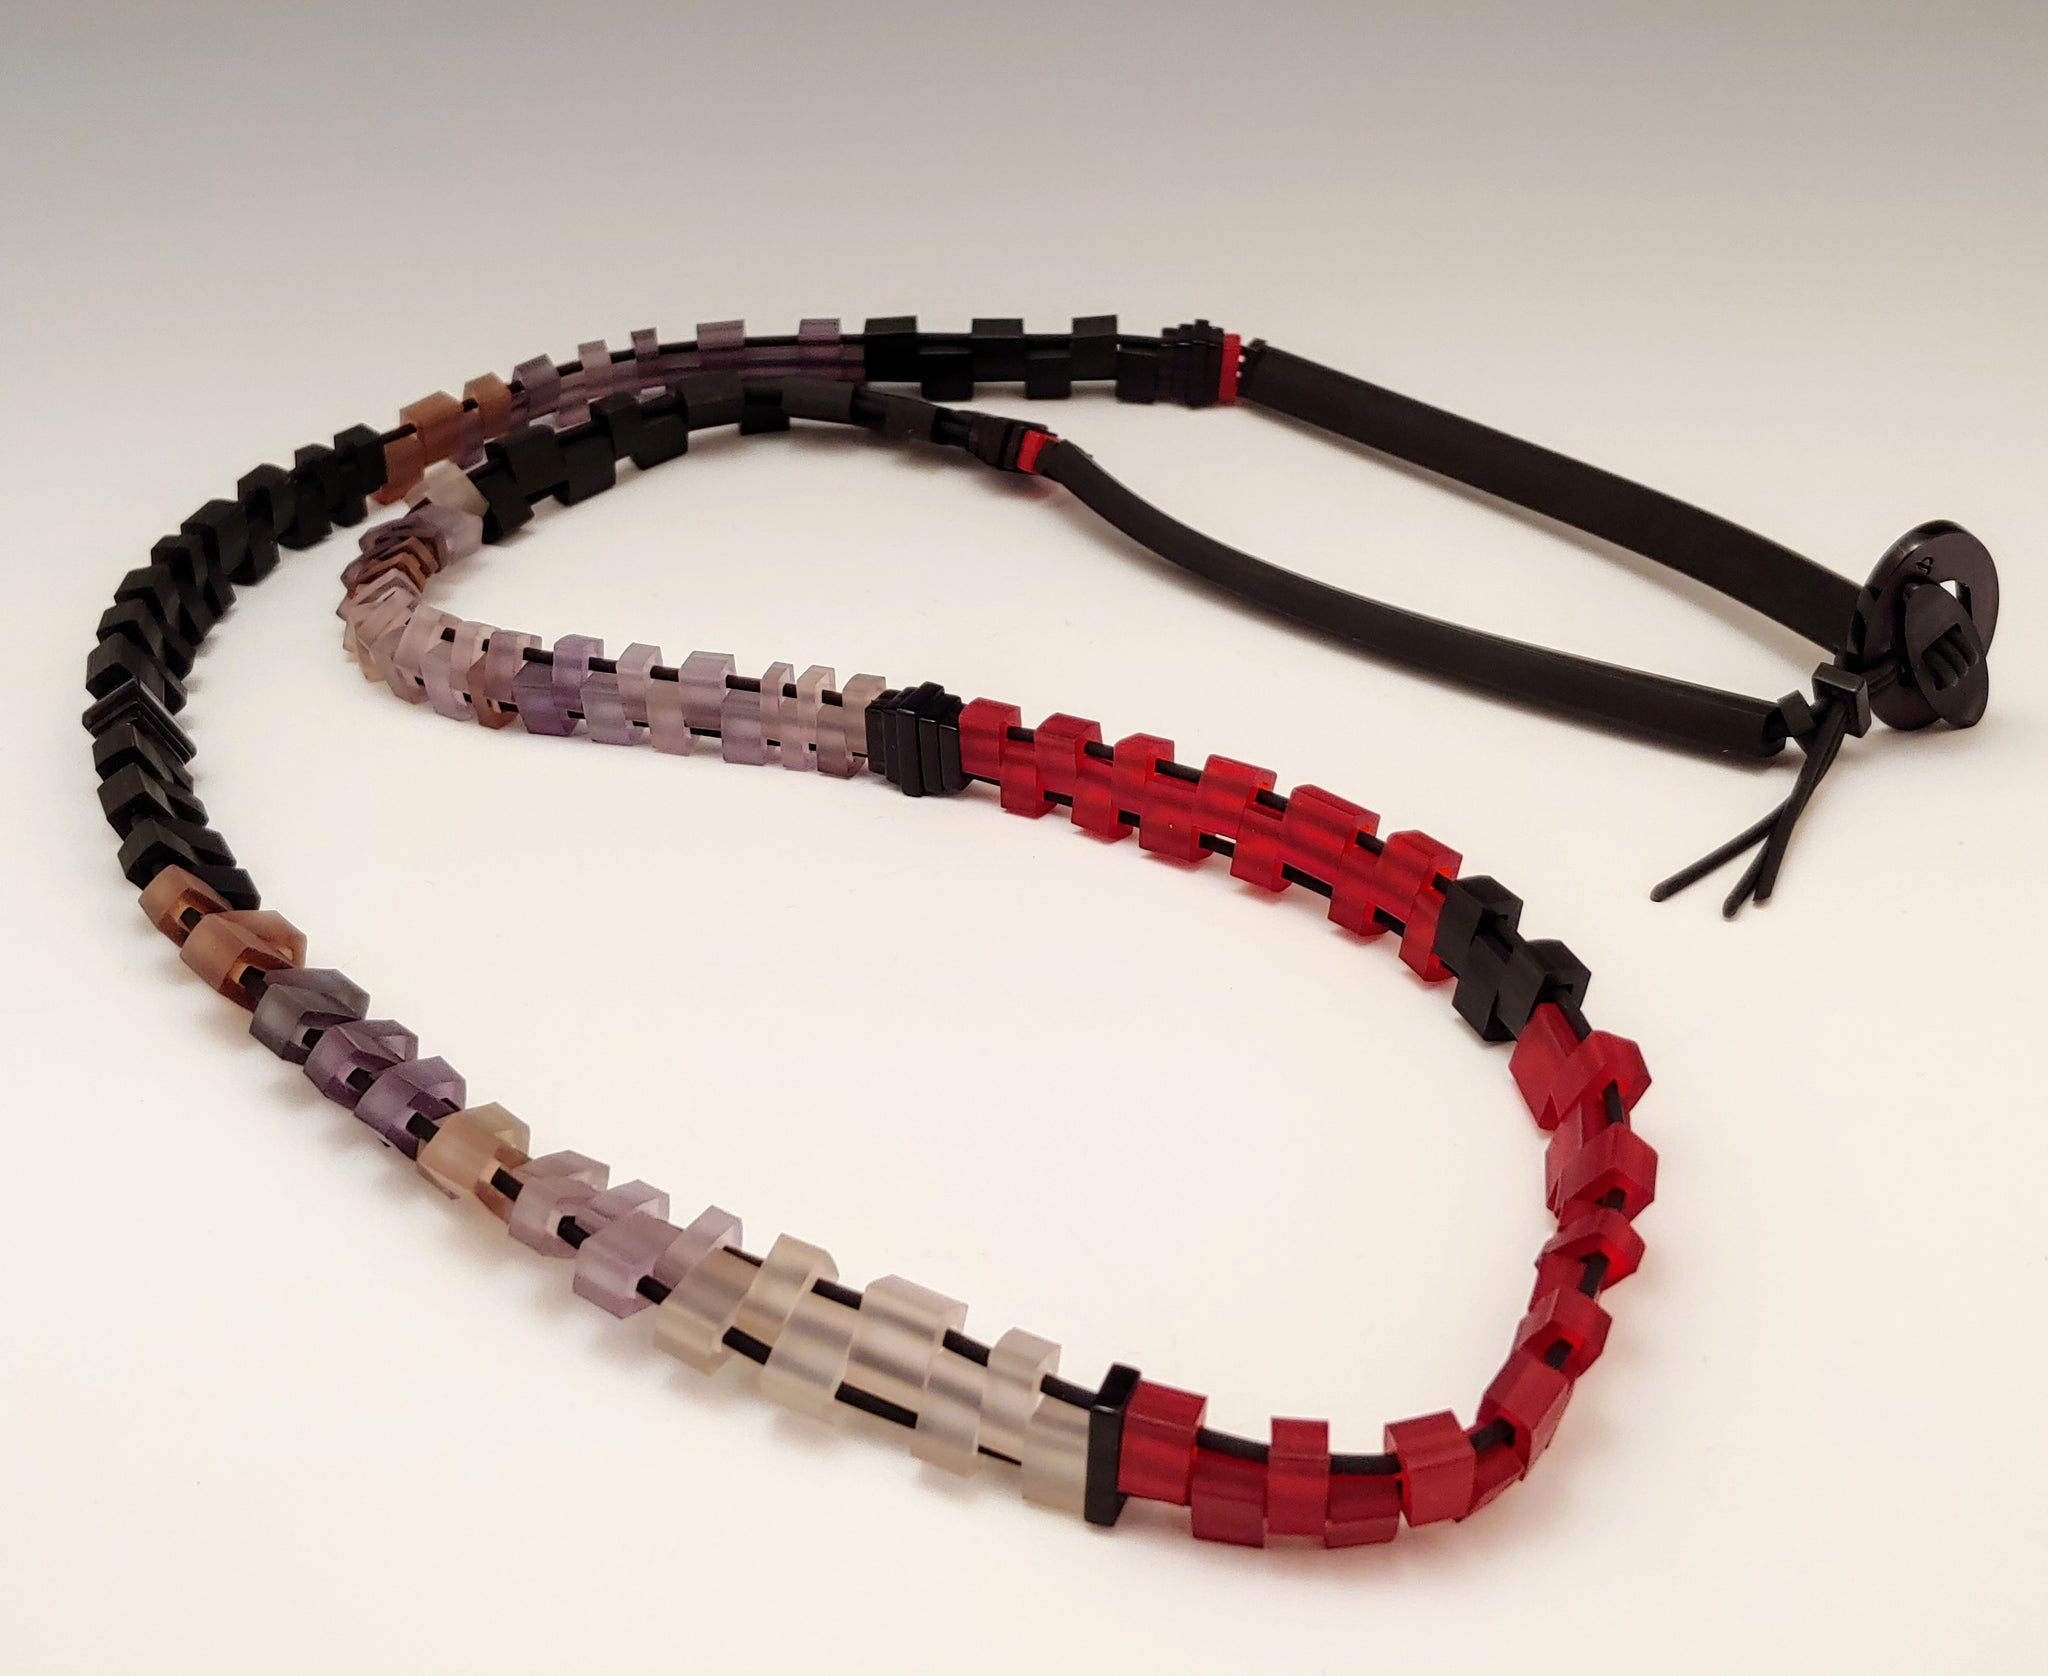 Badaling Long Necklace